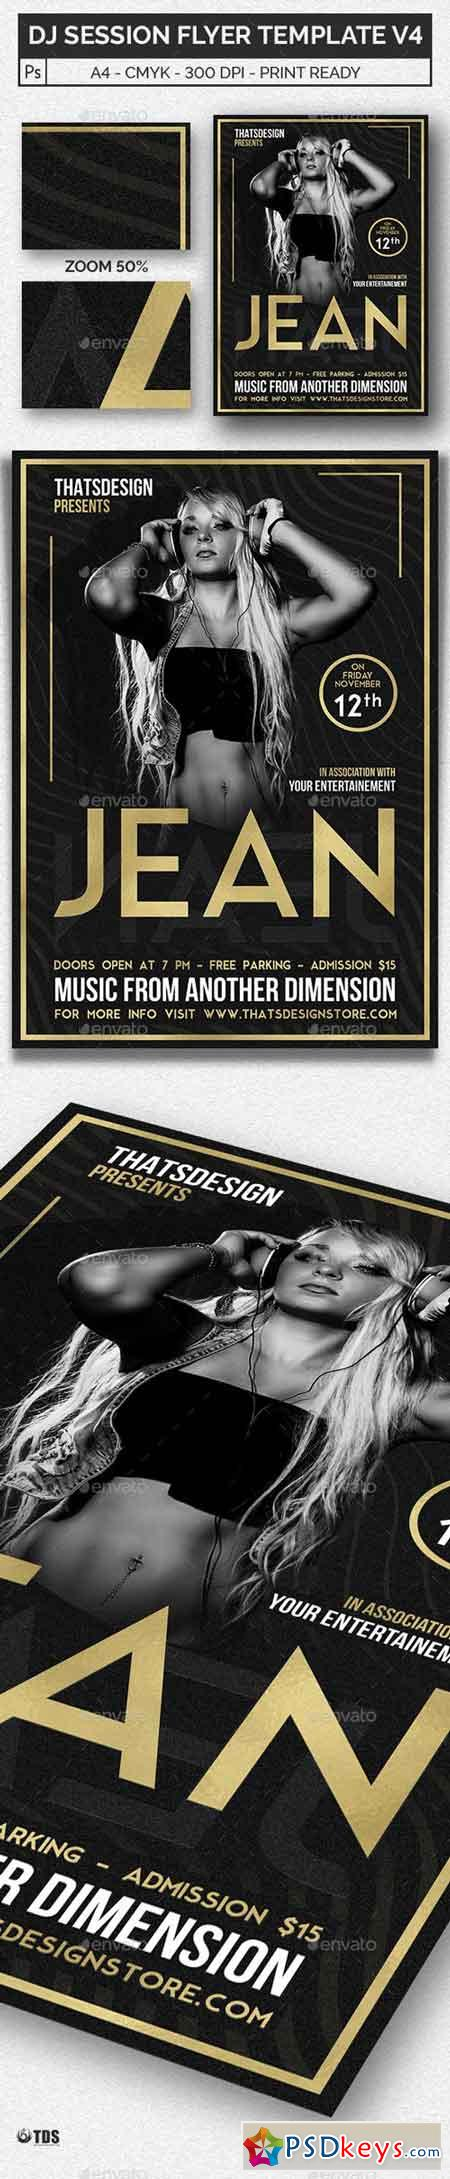 DJ Session Flyer Template V4 20416889